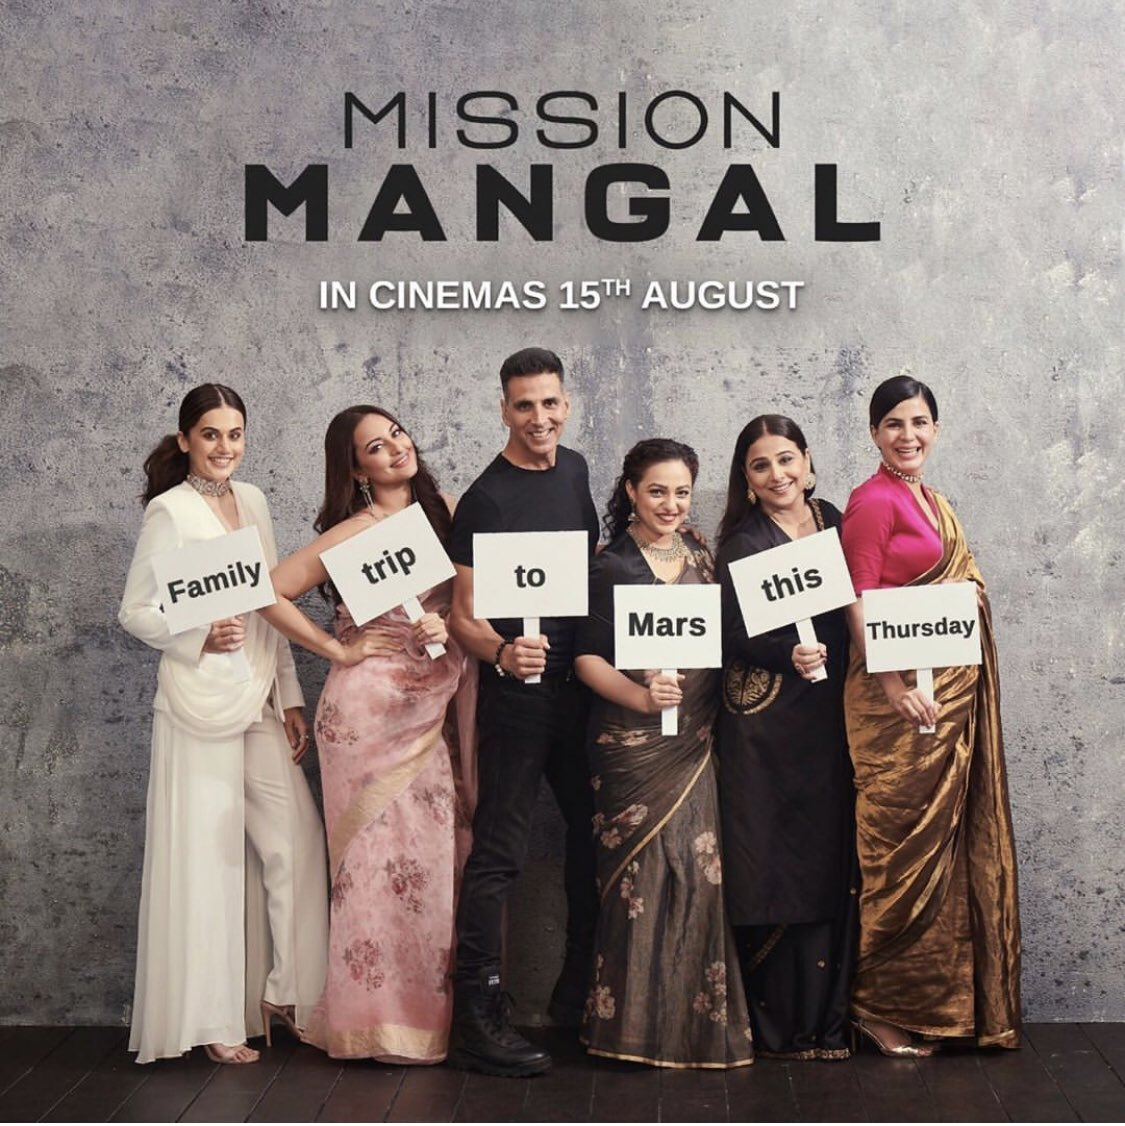 #MissionMangal  #FirstSunday Advance Booking In #Guwahati is #Unstoppable  Total Shows : 44  FF / Sold Out Shows : 39  Over all occupancy : 80-85%  WEEKEND WITH MISSION MANGAL  @akshaykumar @vidya_balan @MenenNithya @foxstarhindi @AKFansGroup @MumbaiAkkians @TheKHILADIGroup<br>http://pic.twitter.com/v7DJR6l7aa